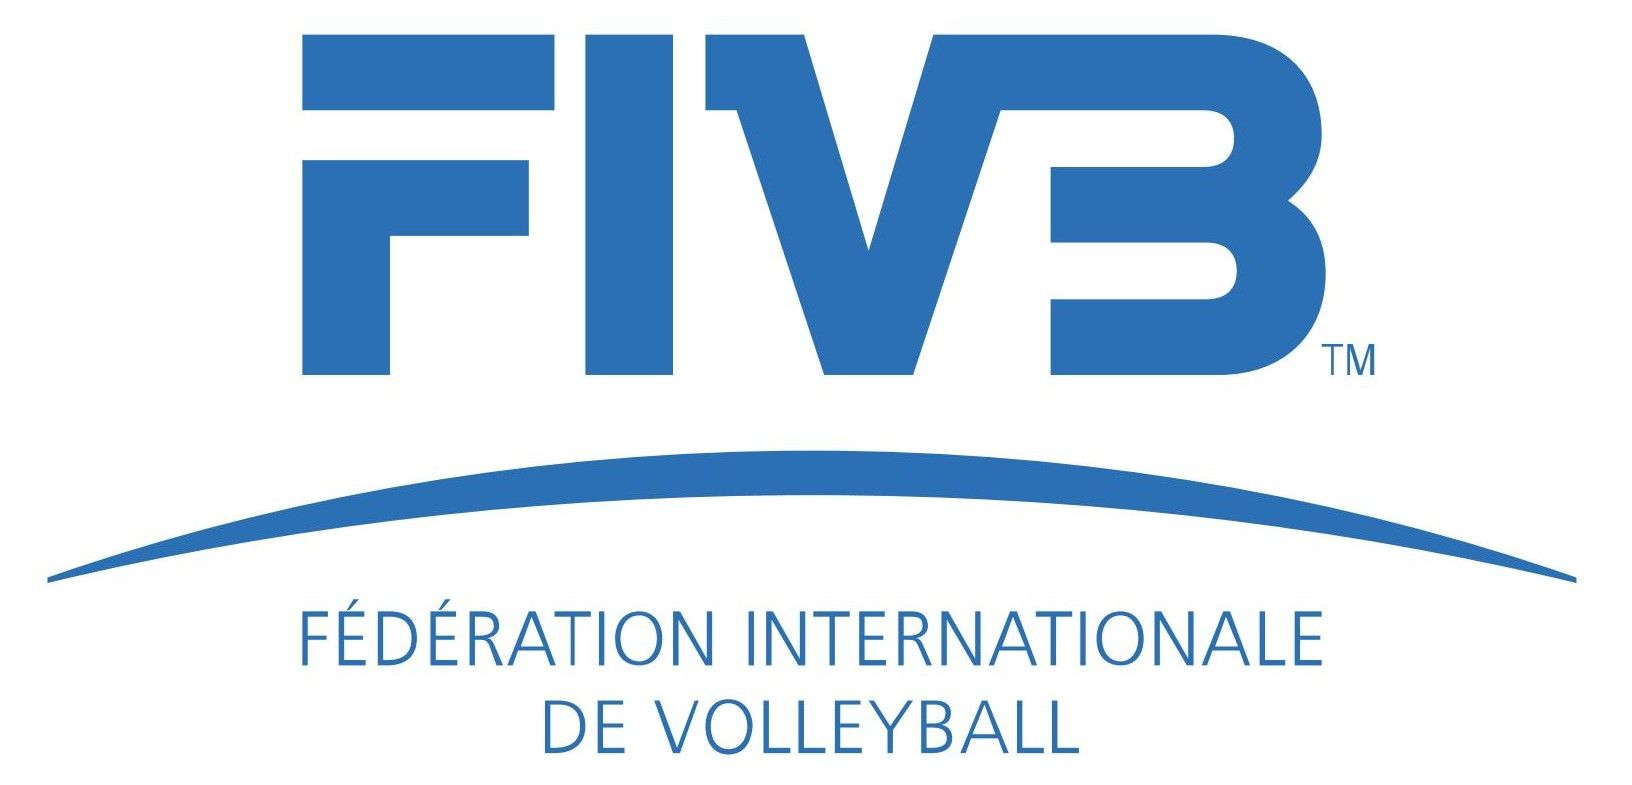 Fédération Internationale de Volleyball (FIVB) Logo [EPS File] - AVC, beach, beach volleyball, BeachVolley, BeachVolleyball, CAVB, CEV, CSV, f, Federación Internacional de Voleibol, federation, Fédération Internationale, Fédération internationale de volley-ball, Fédération Internationale de Volleyball, FIVB, grand prix, International Federation of Volleyball, Internationale, Internationale de Volleyball, Lausanne, men volleyball, men's volleyball, NORCECA, Switzerland, Uluslararası Voleybol